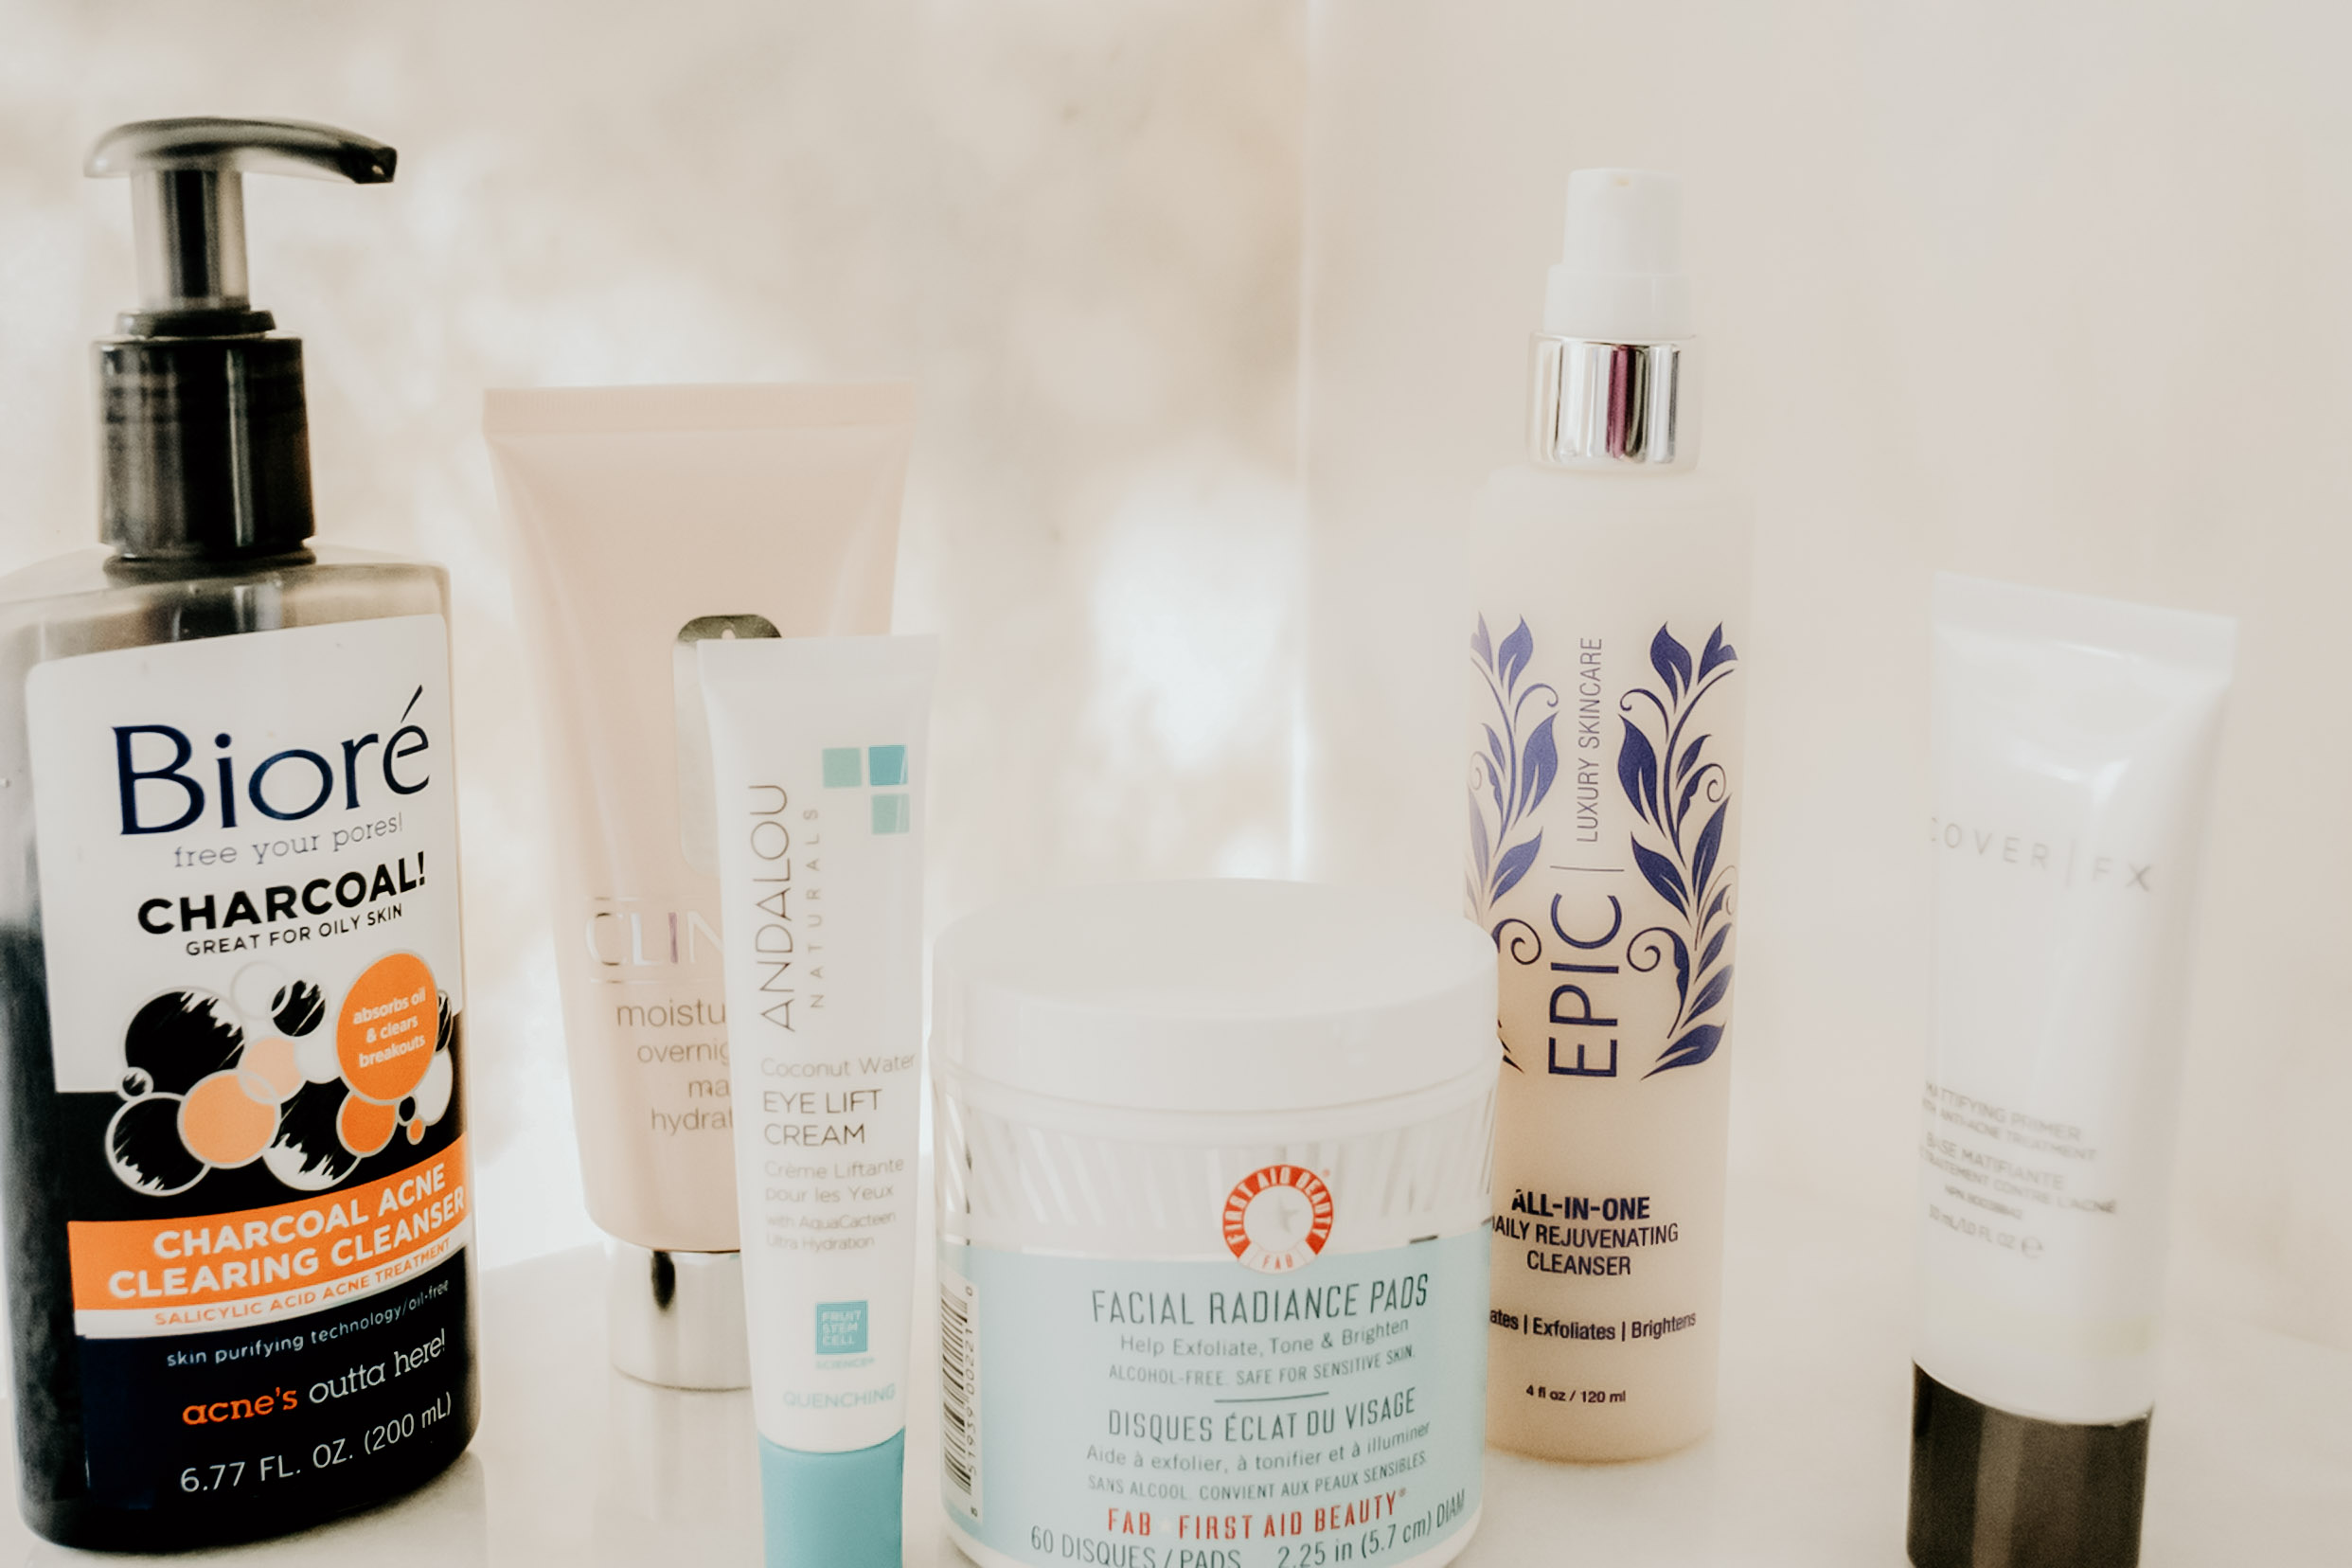 Left to Right ( Biore Charcoal Acne Clearing Cleanser/  Clinique Moisture Overnight Mask /  Andalou Eye Life Cream Coconut Water /  First Aid Facial Radiance Pads /  Epic Luxury Skincare All-In-One Daily Rejuvenating Cleanser /  Cover FX Mattifying Primer )